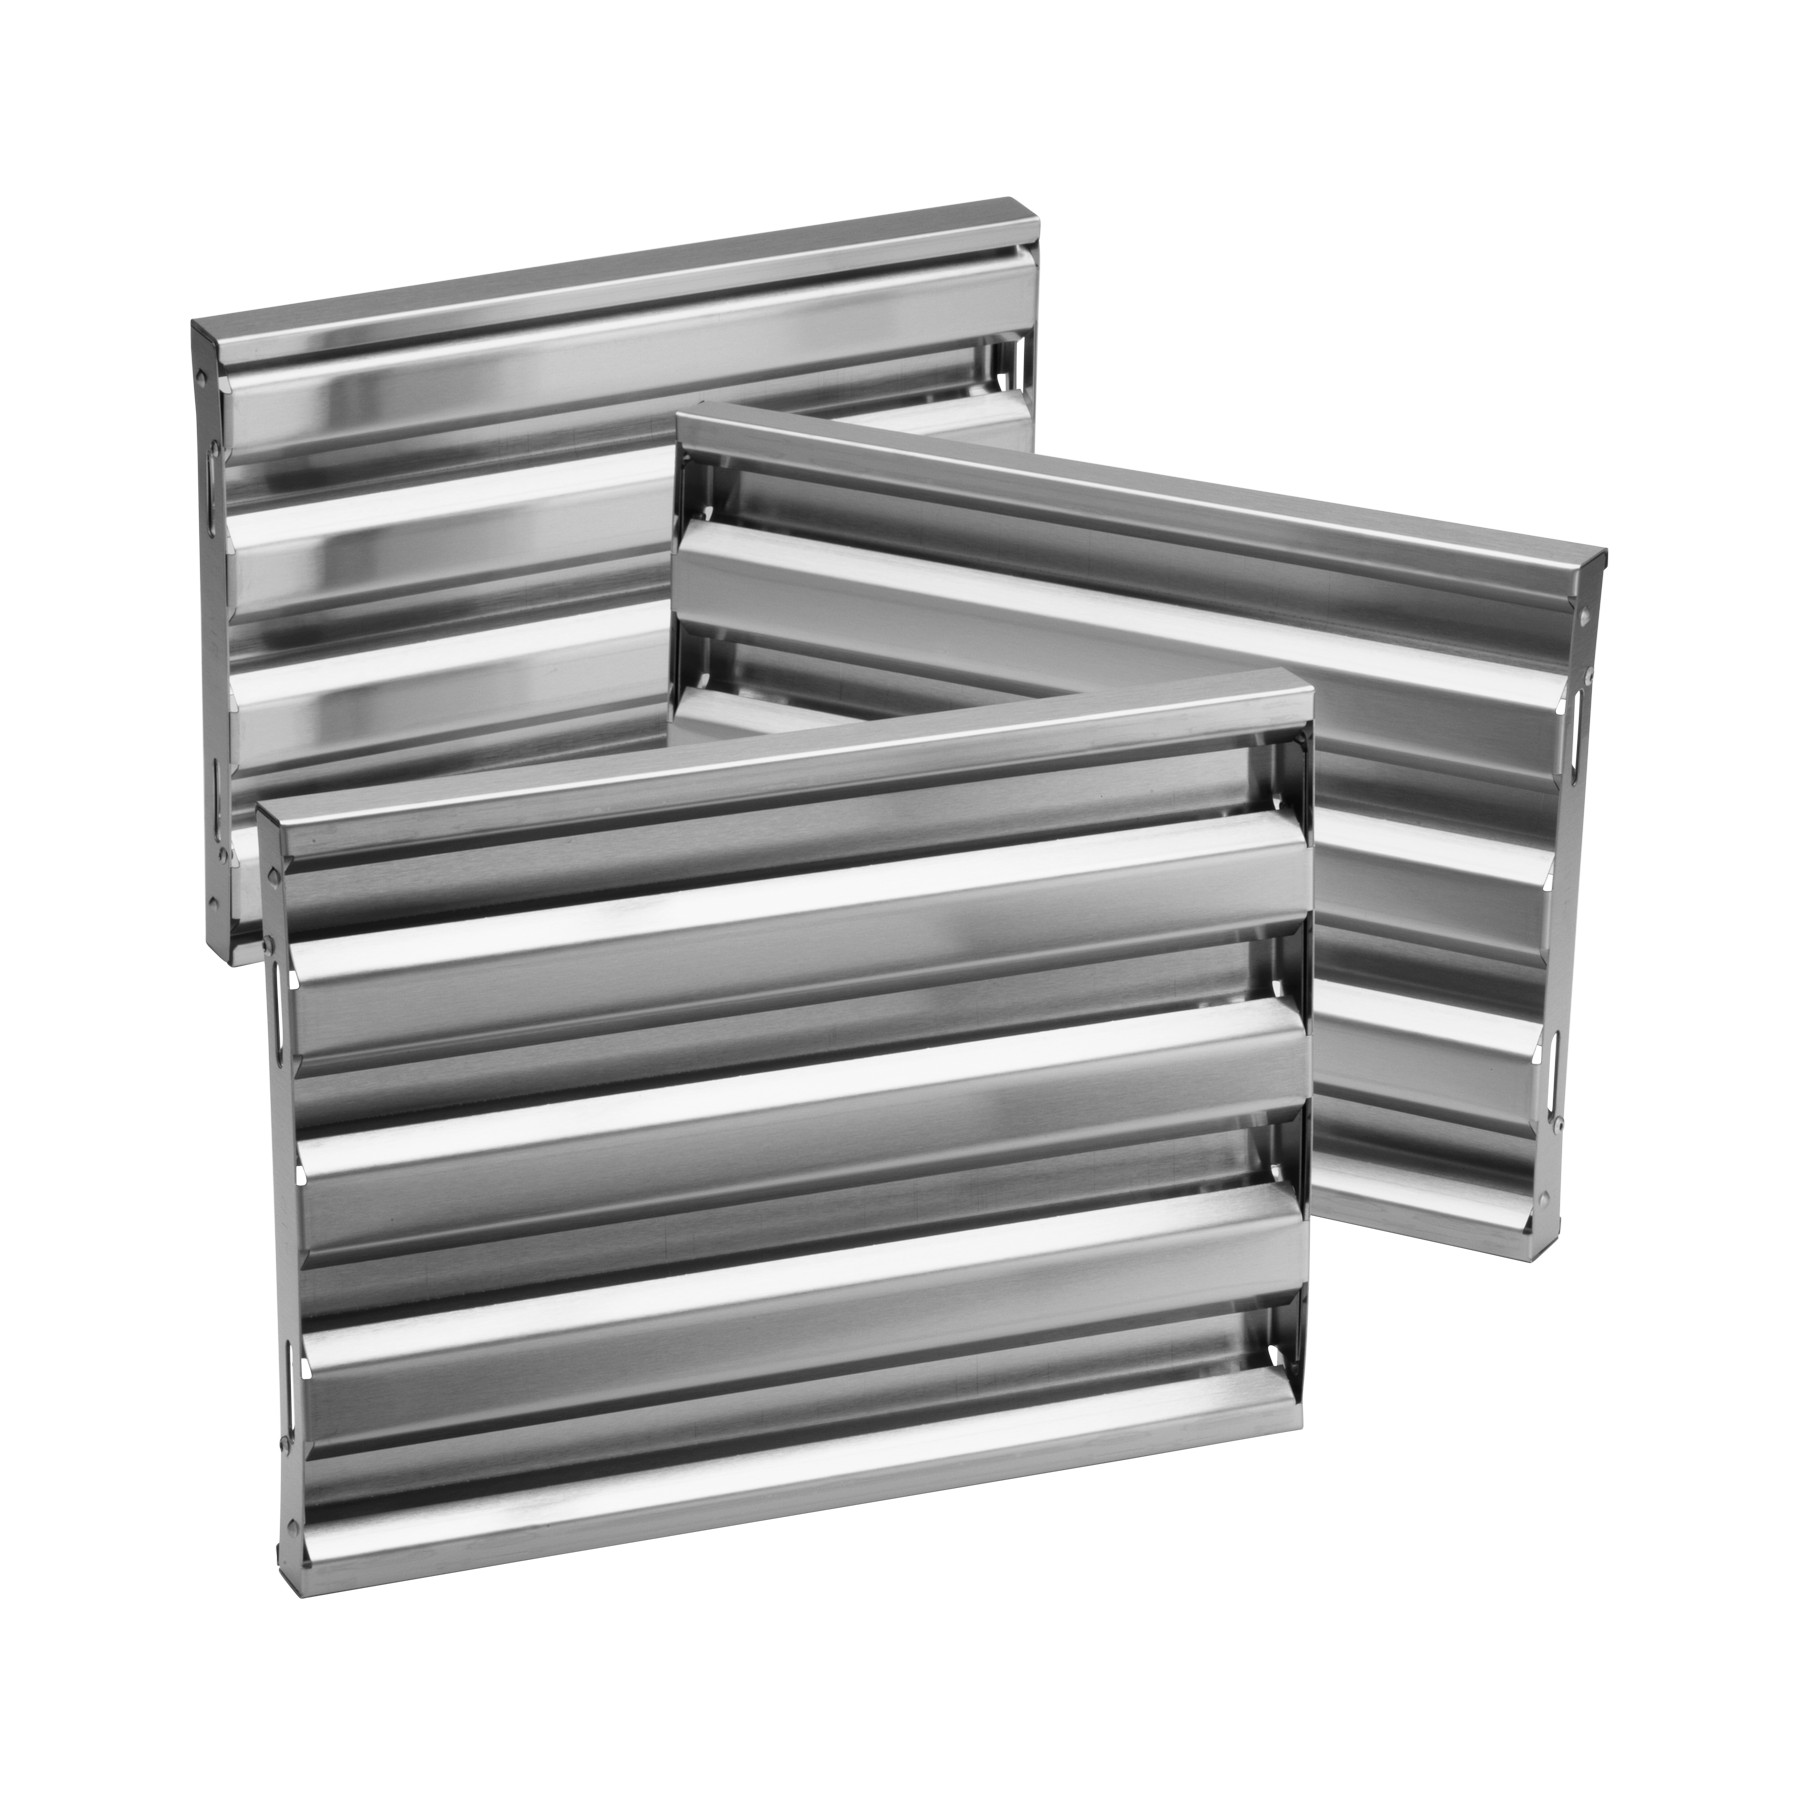 Optional Baffle Filter Kit for 45-Inch Pro-Style Insert, in Stainless Steel